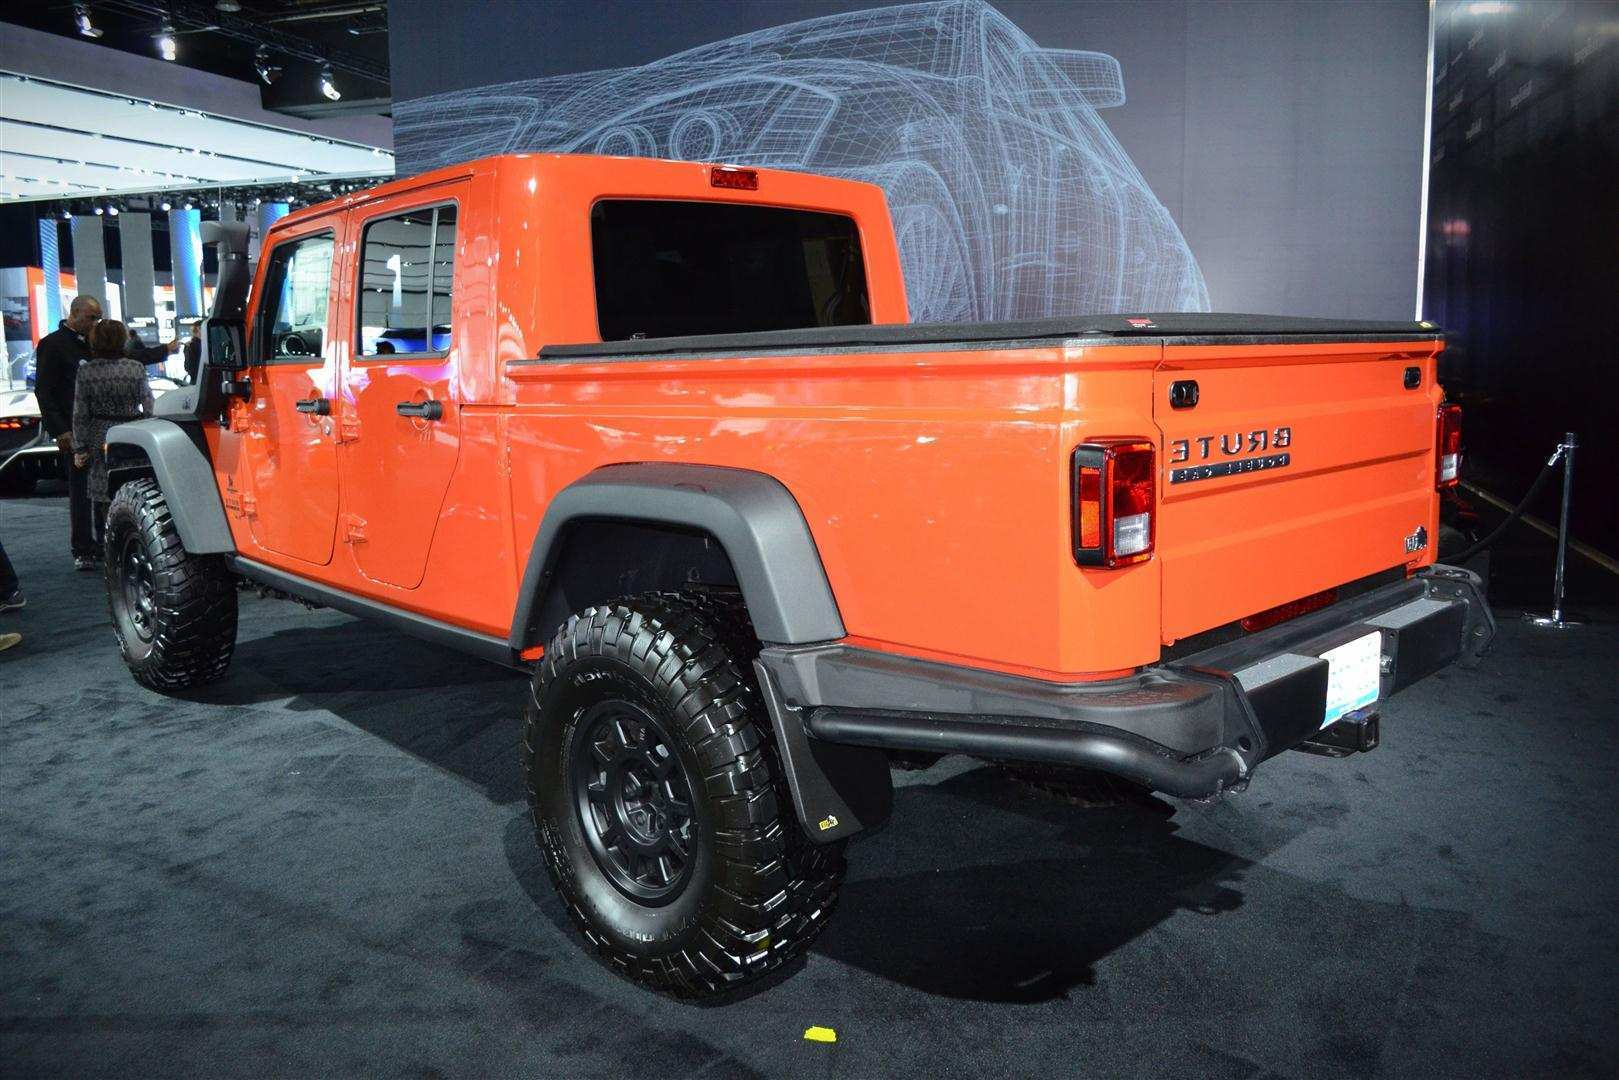 30 Concept of The Jeep Hybrid 2019 Release Date History for The Jeep Hybrid 2019 Release Date